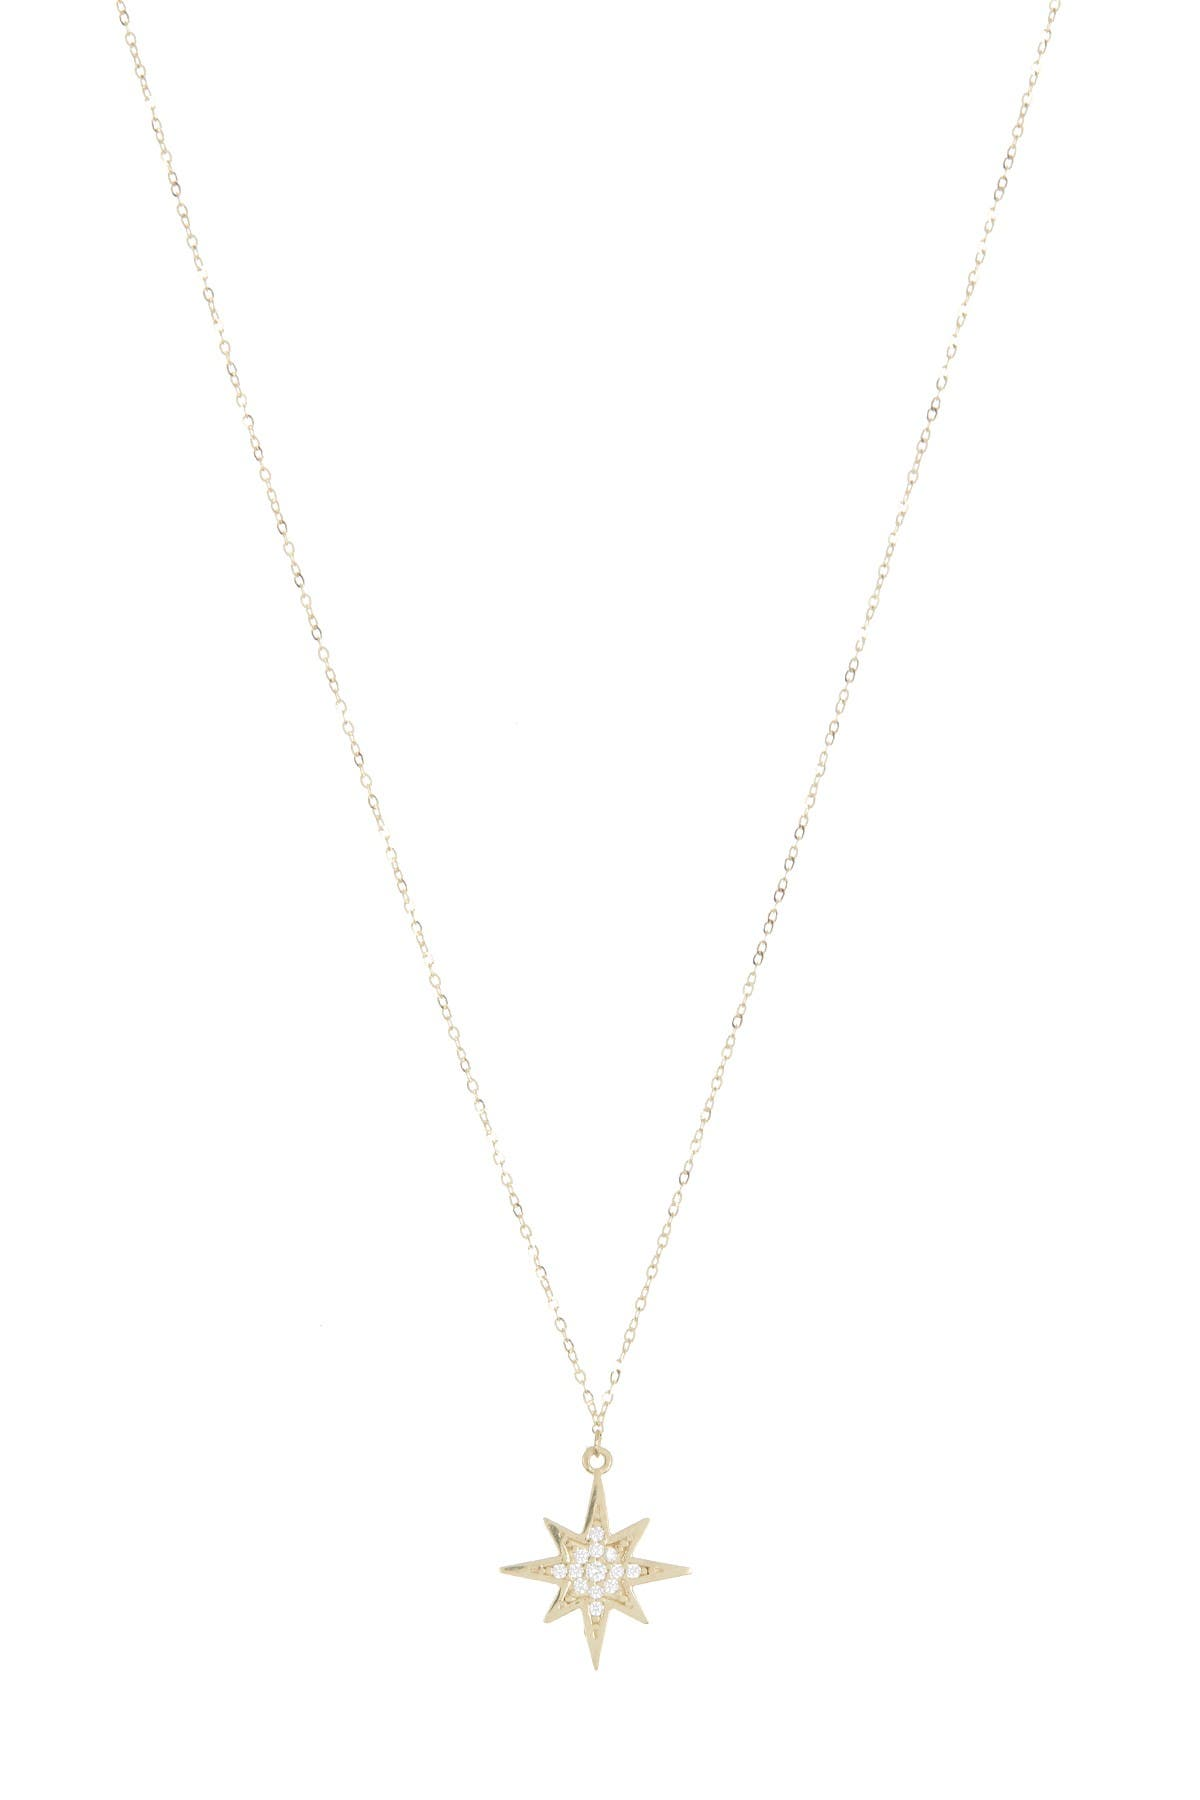 Image of Candela 10K North Star Cubic Zirconia Pendant Necklace